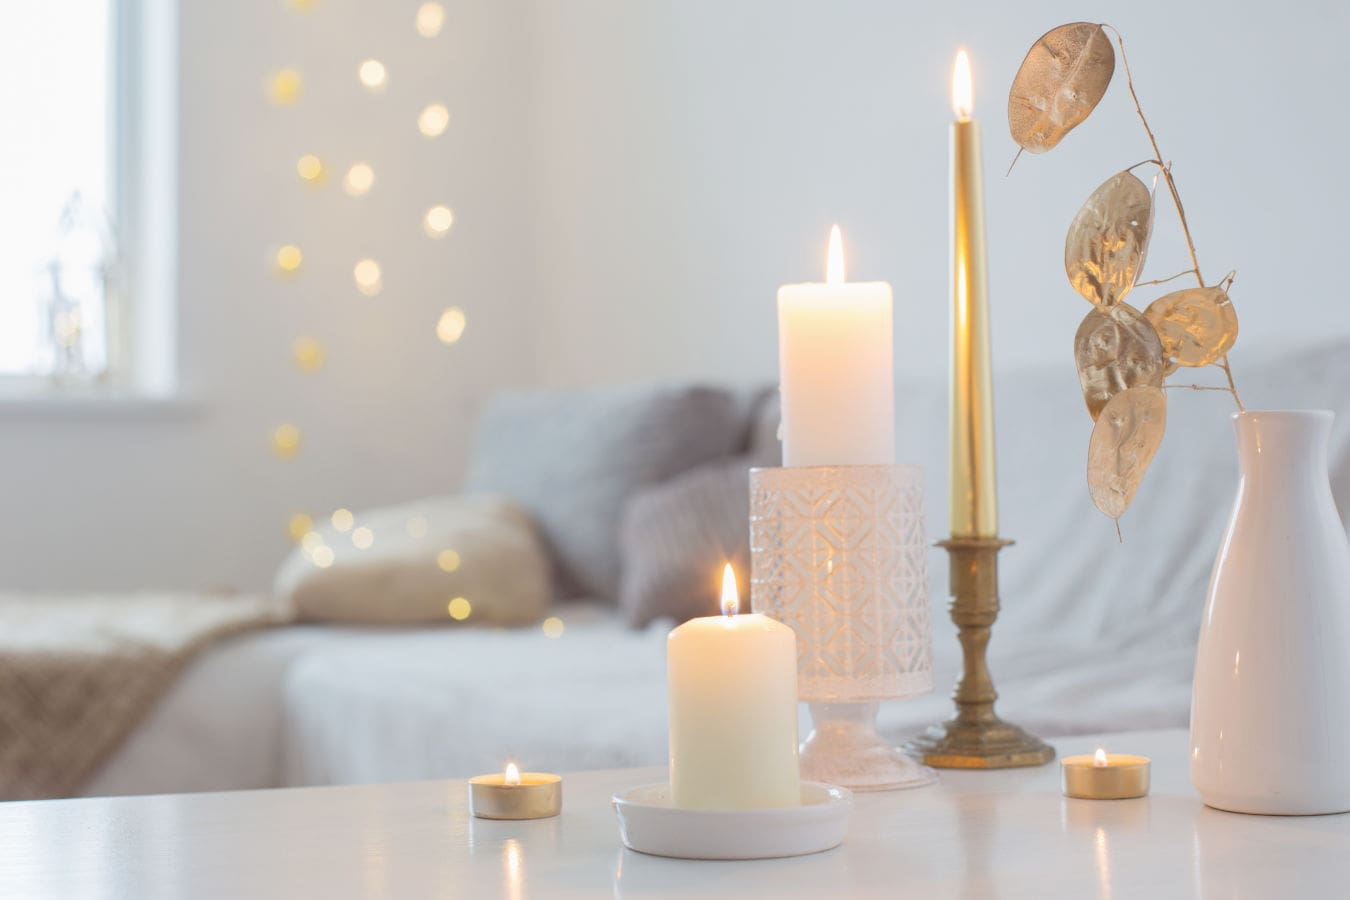 modern-beautiful-candlelight-candles-candlestick-christmas-comfort-comfortable-decoration-design-details-elegant-evening-festive-fire-flame-flowers-golden-home-indoors-leisure-life-lifestyles-